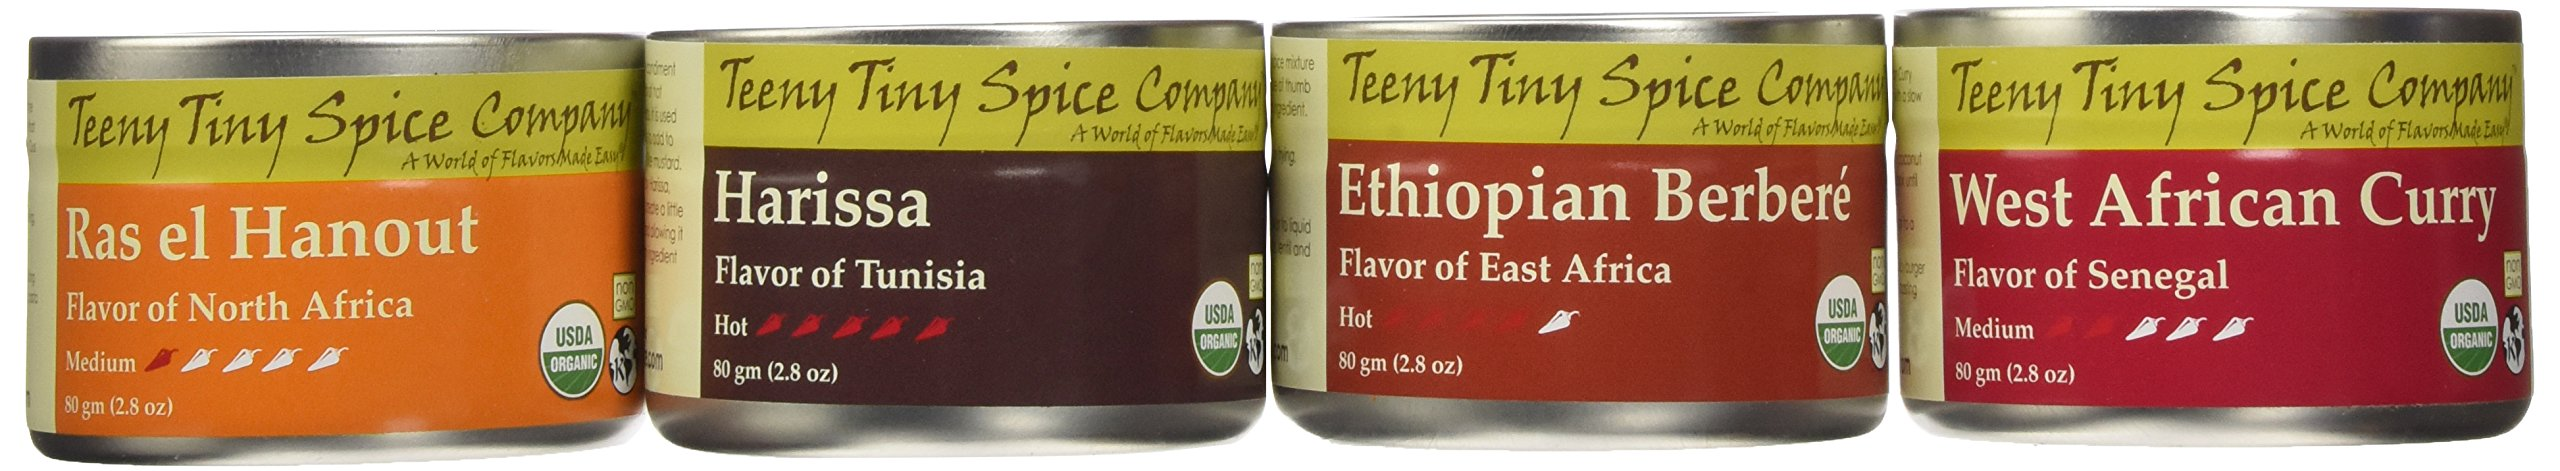 Teeny Tiny Spice Company Organic African Spice Blends Variety Pack, Four 2.8 Oz Tins